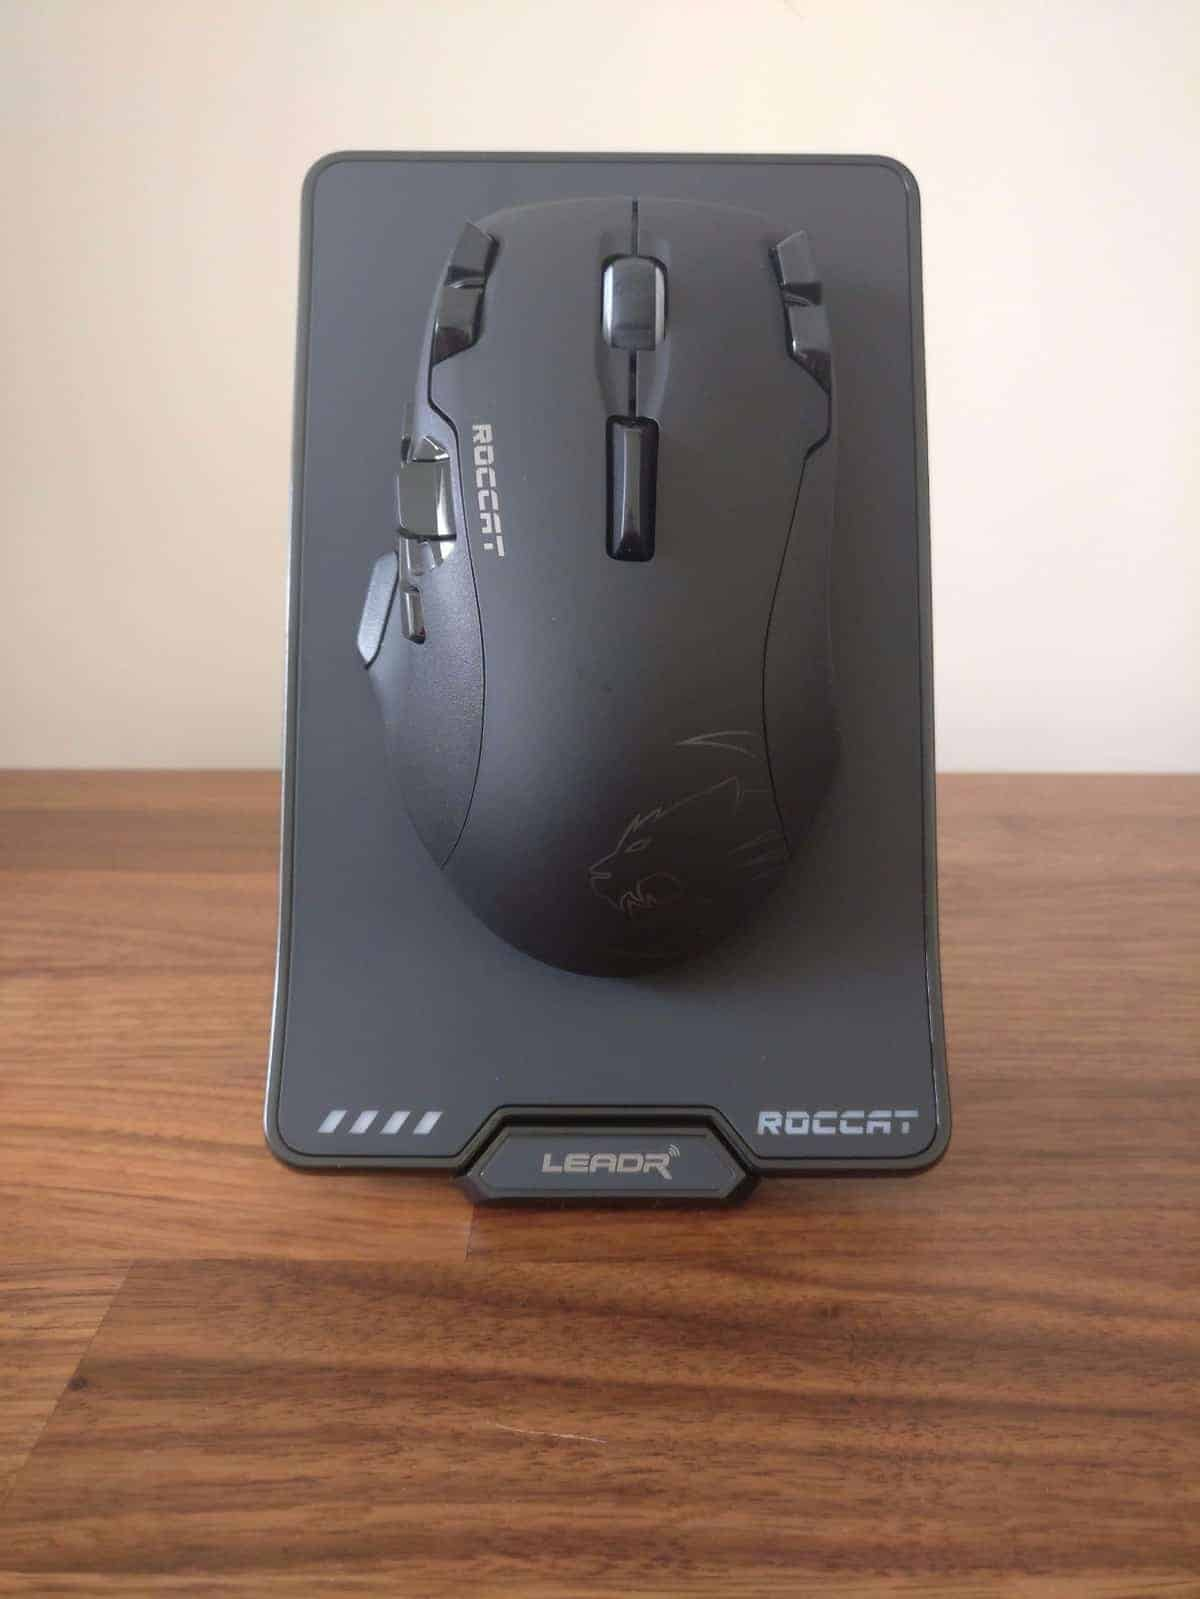 Roccat-Leadr-Photos39 Roccat Leadr Wireless Gaming Mouse Review